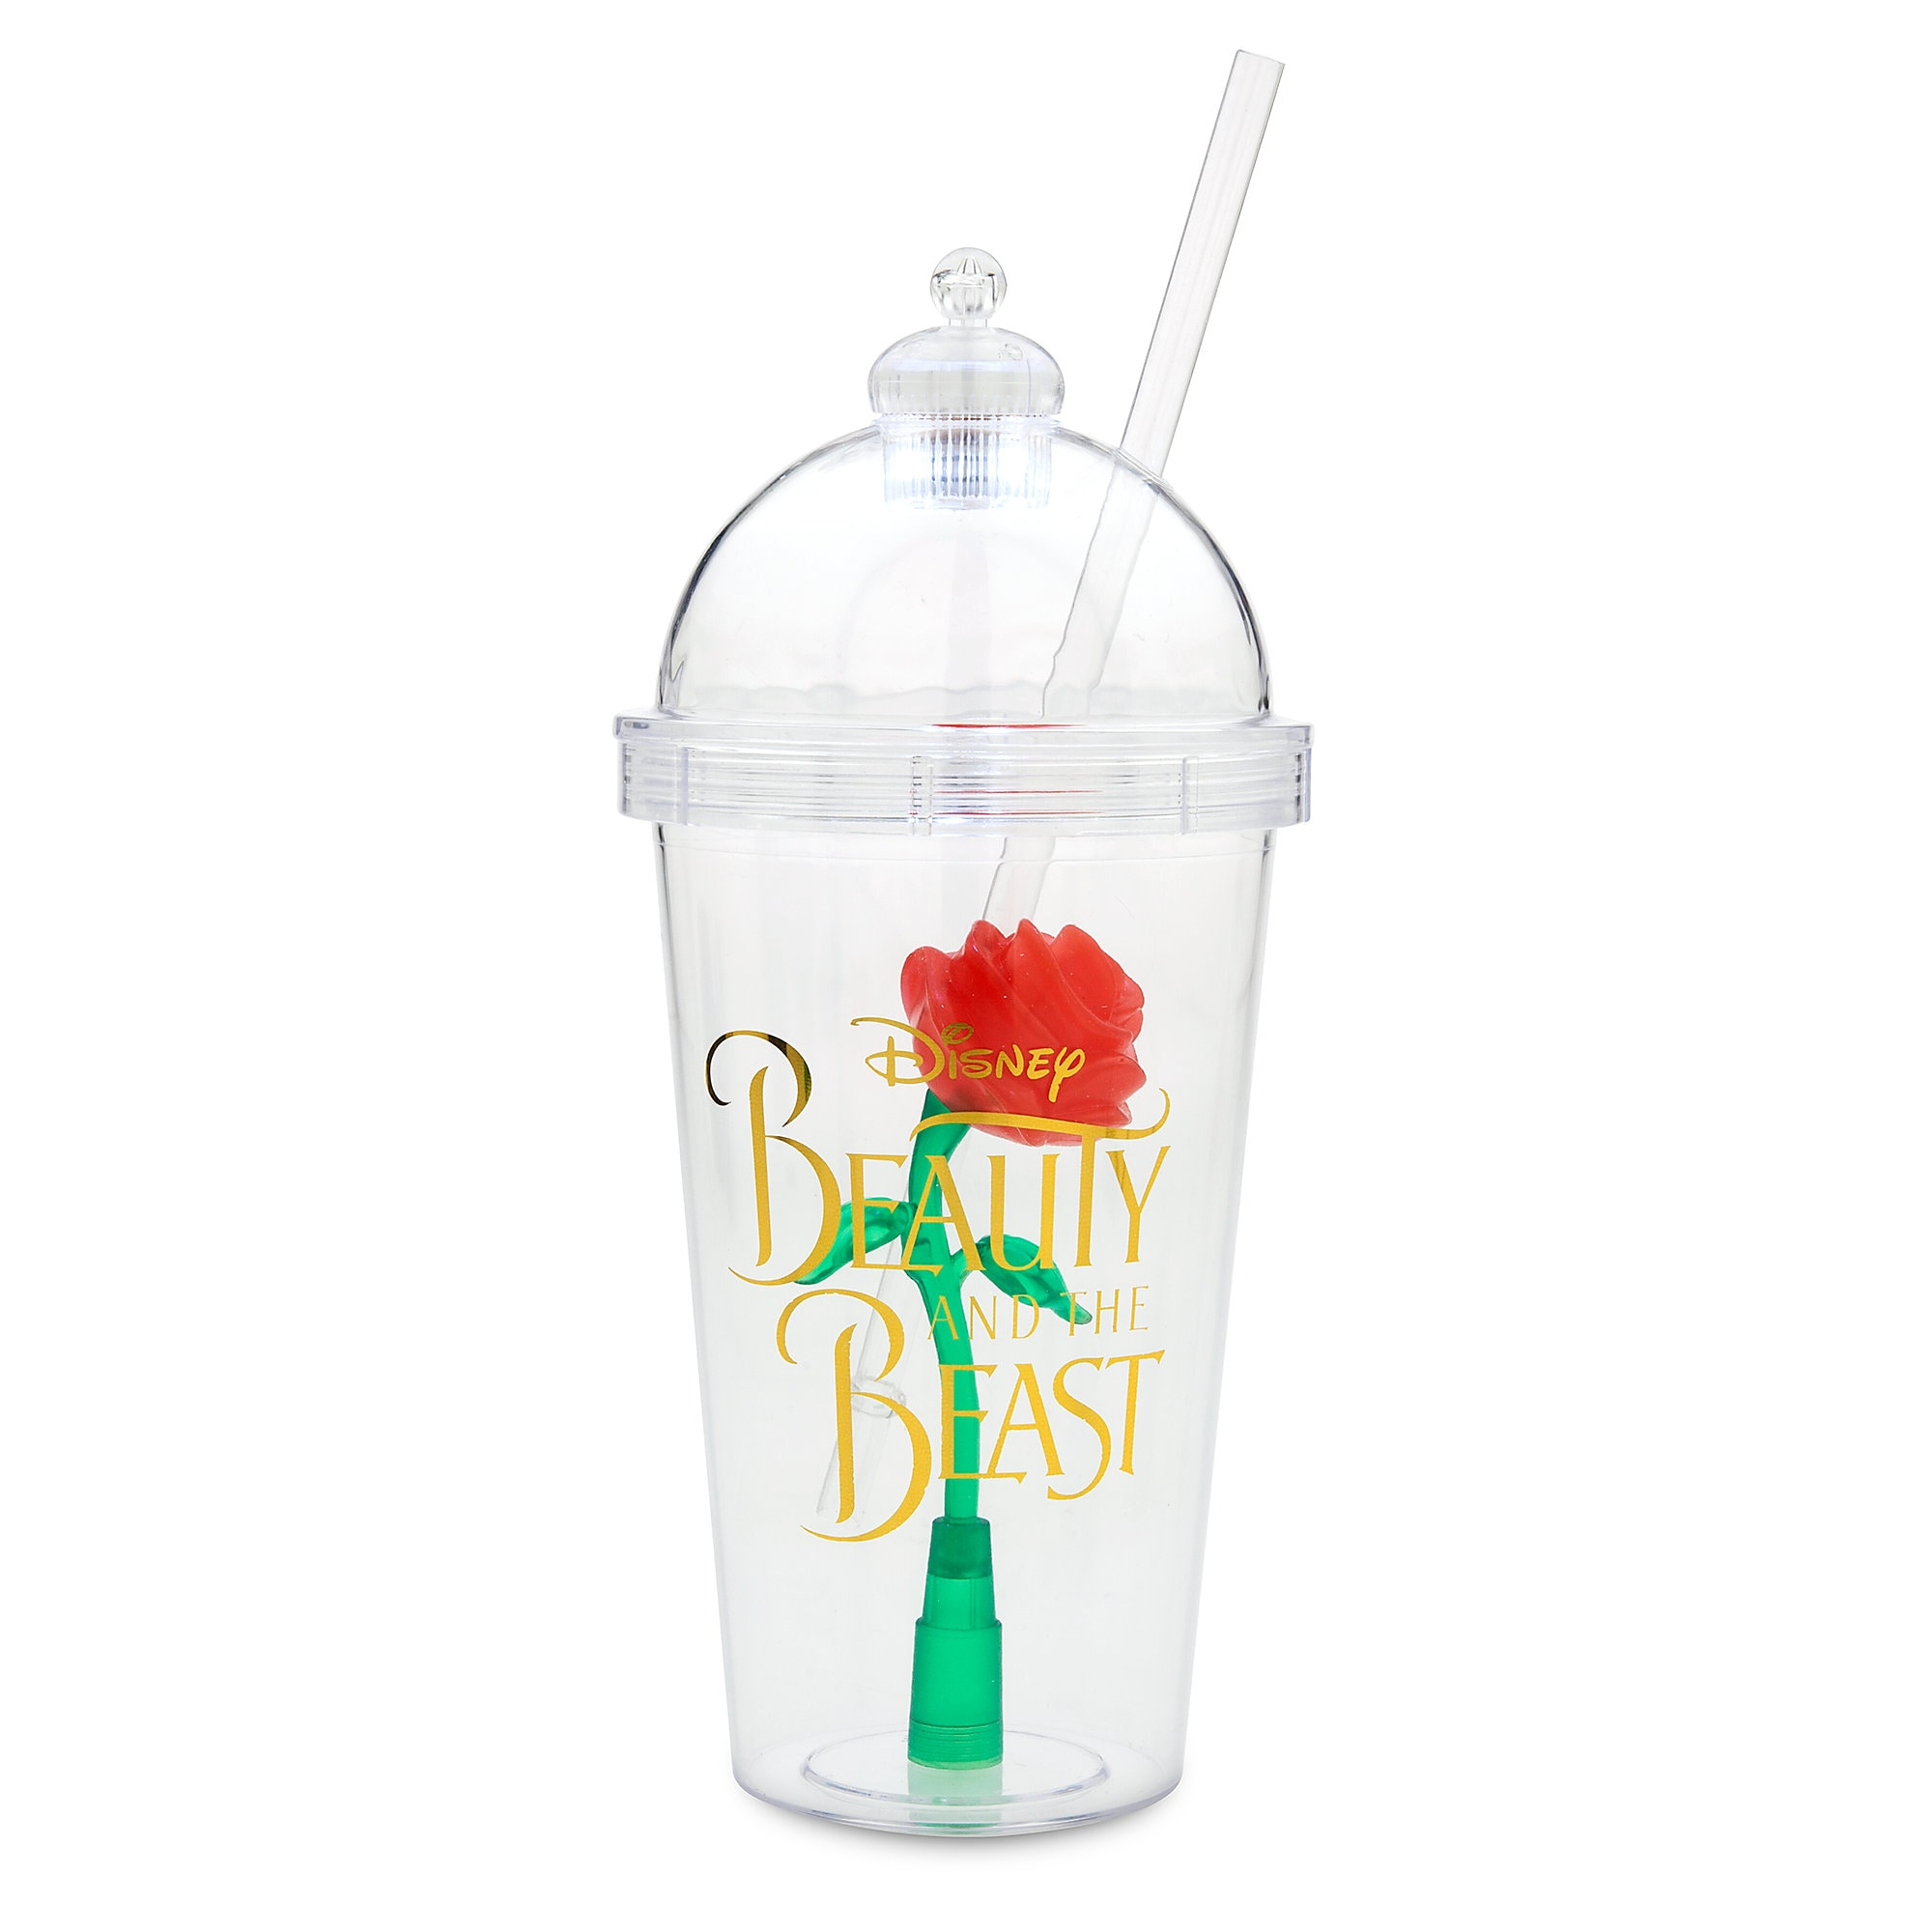 35fc9a0d0 Enchanted Rose Light-Up Dome Tumbler with Straw - Beauty and the Beast |  shopDisney